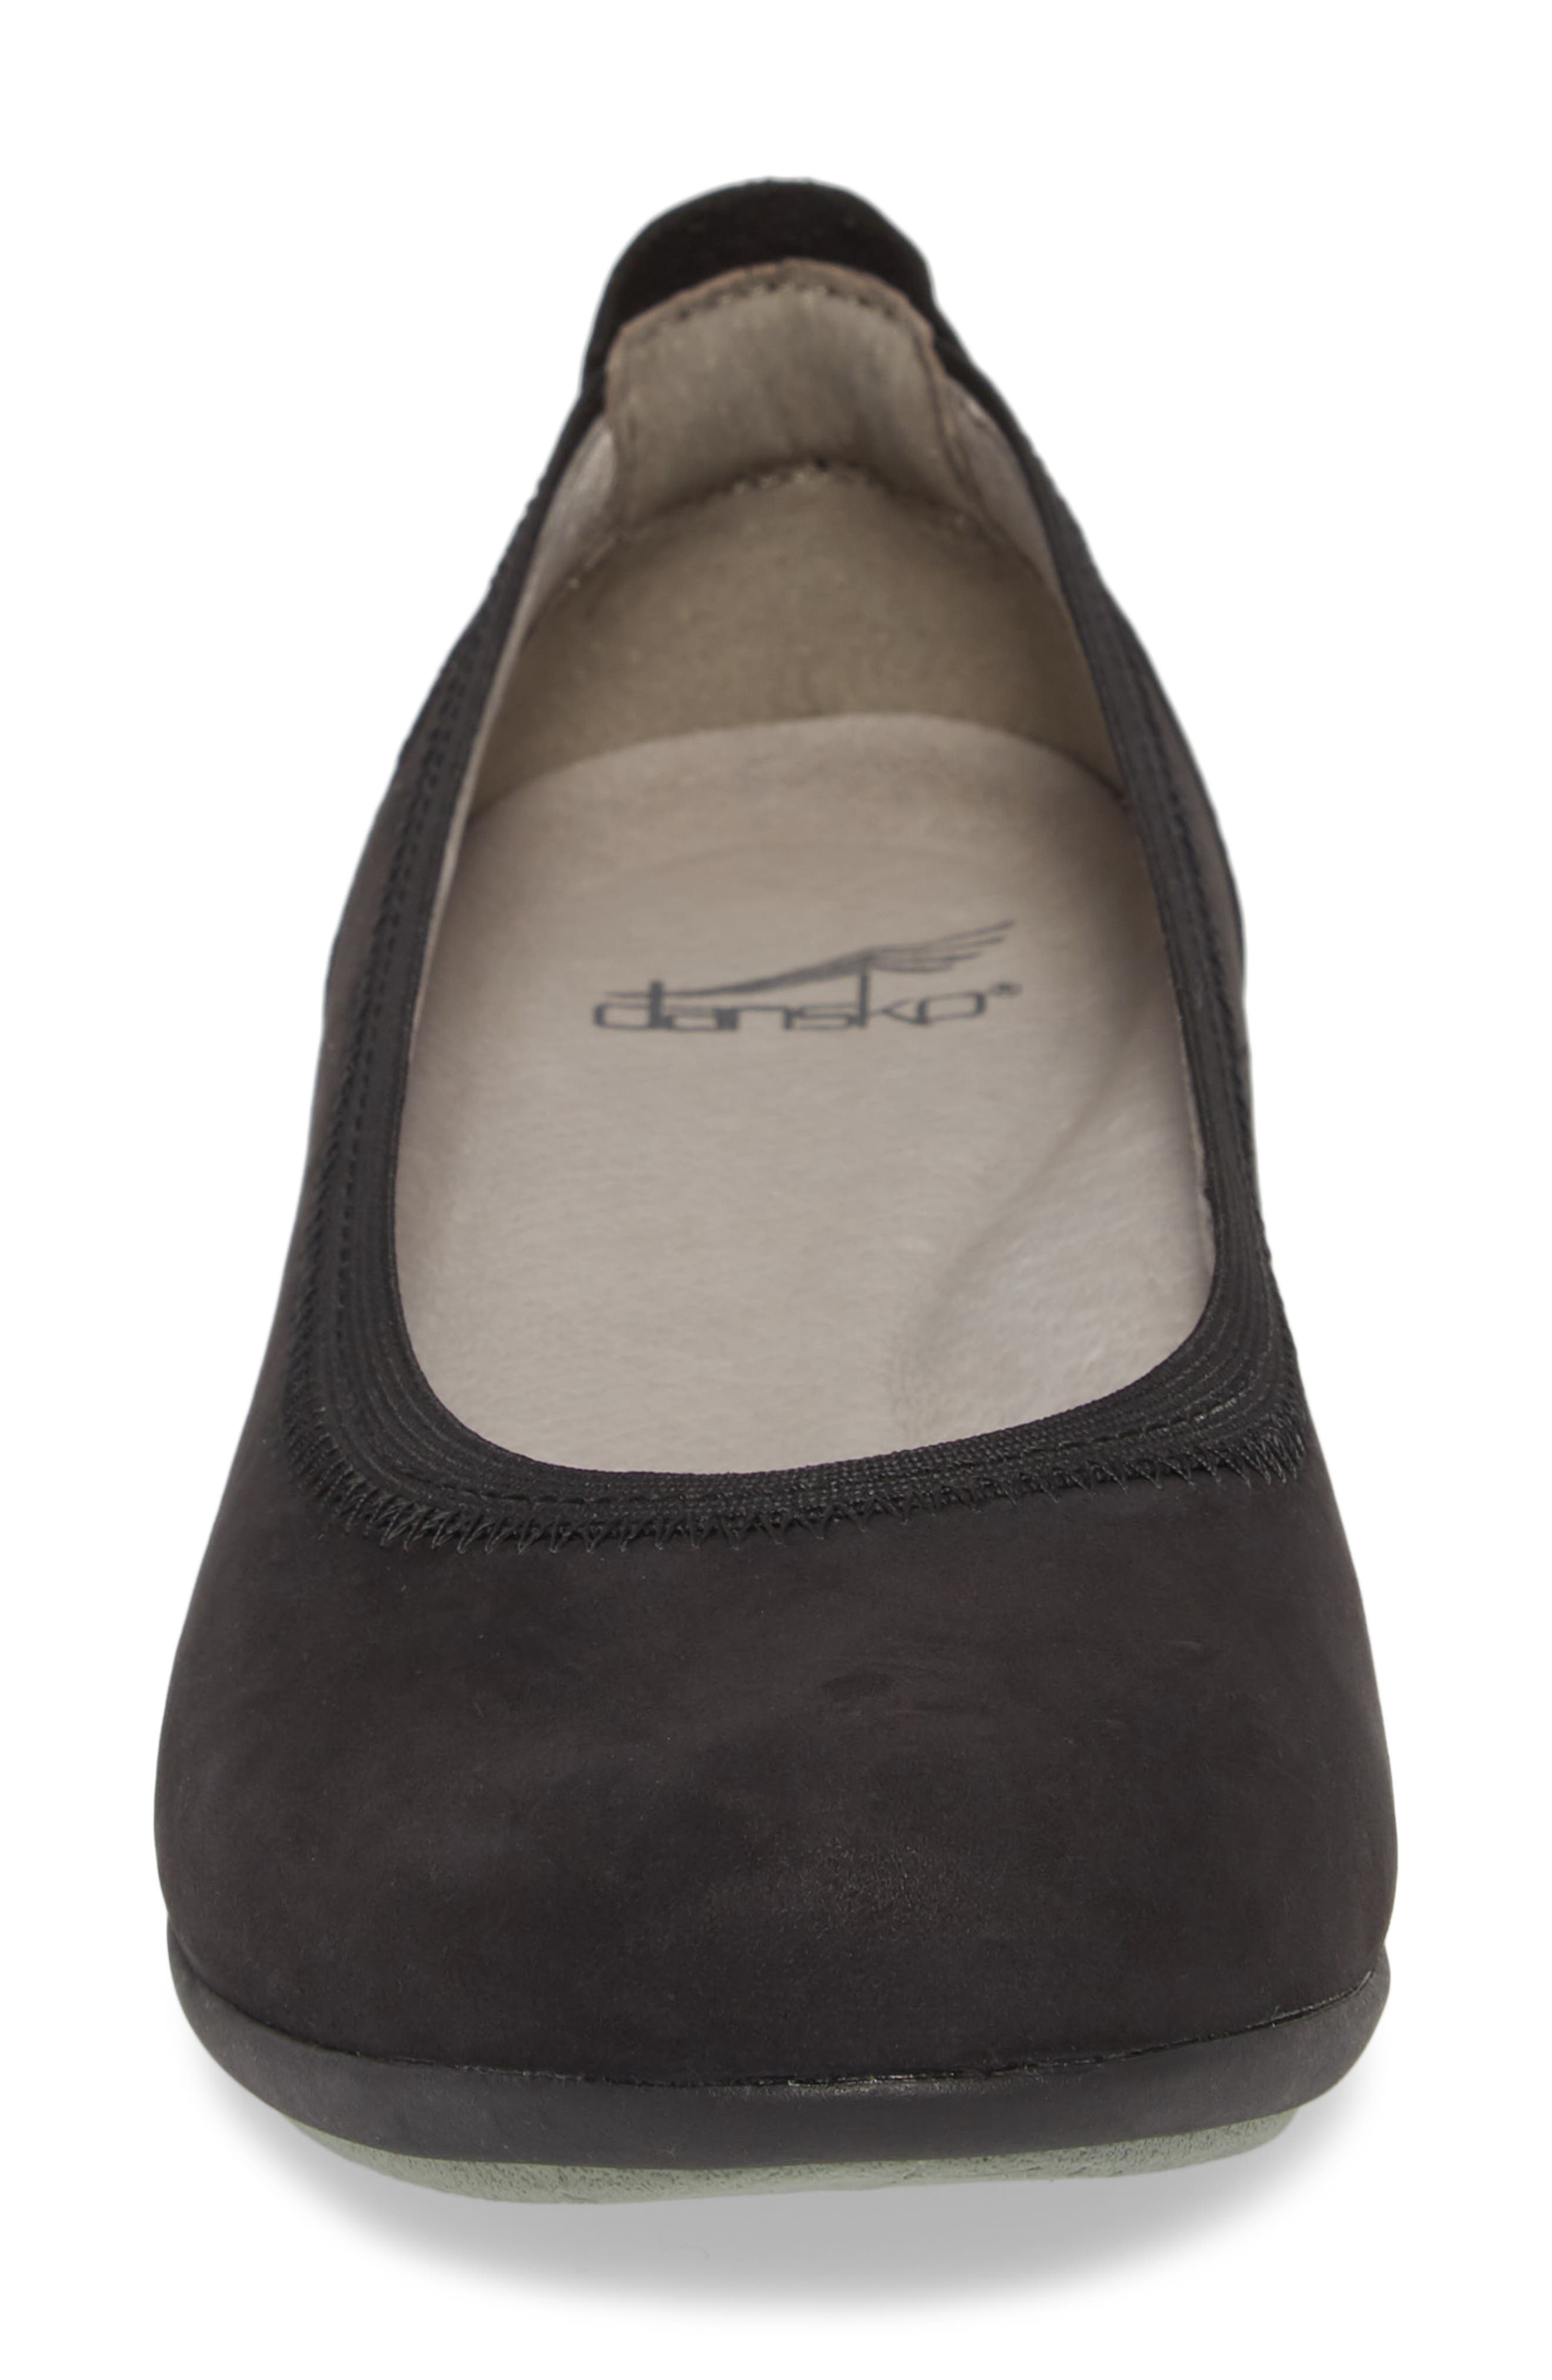 DANSKO, Kristen Ballet Flat, Alternate thumbnail 4, color, BLACK MILLED NUBUCK